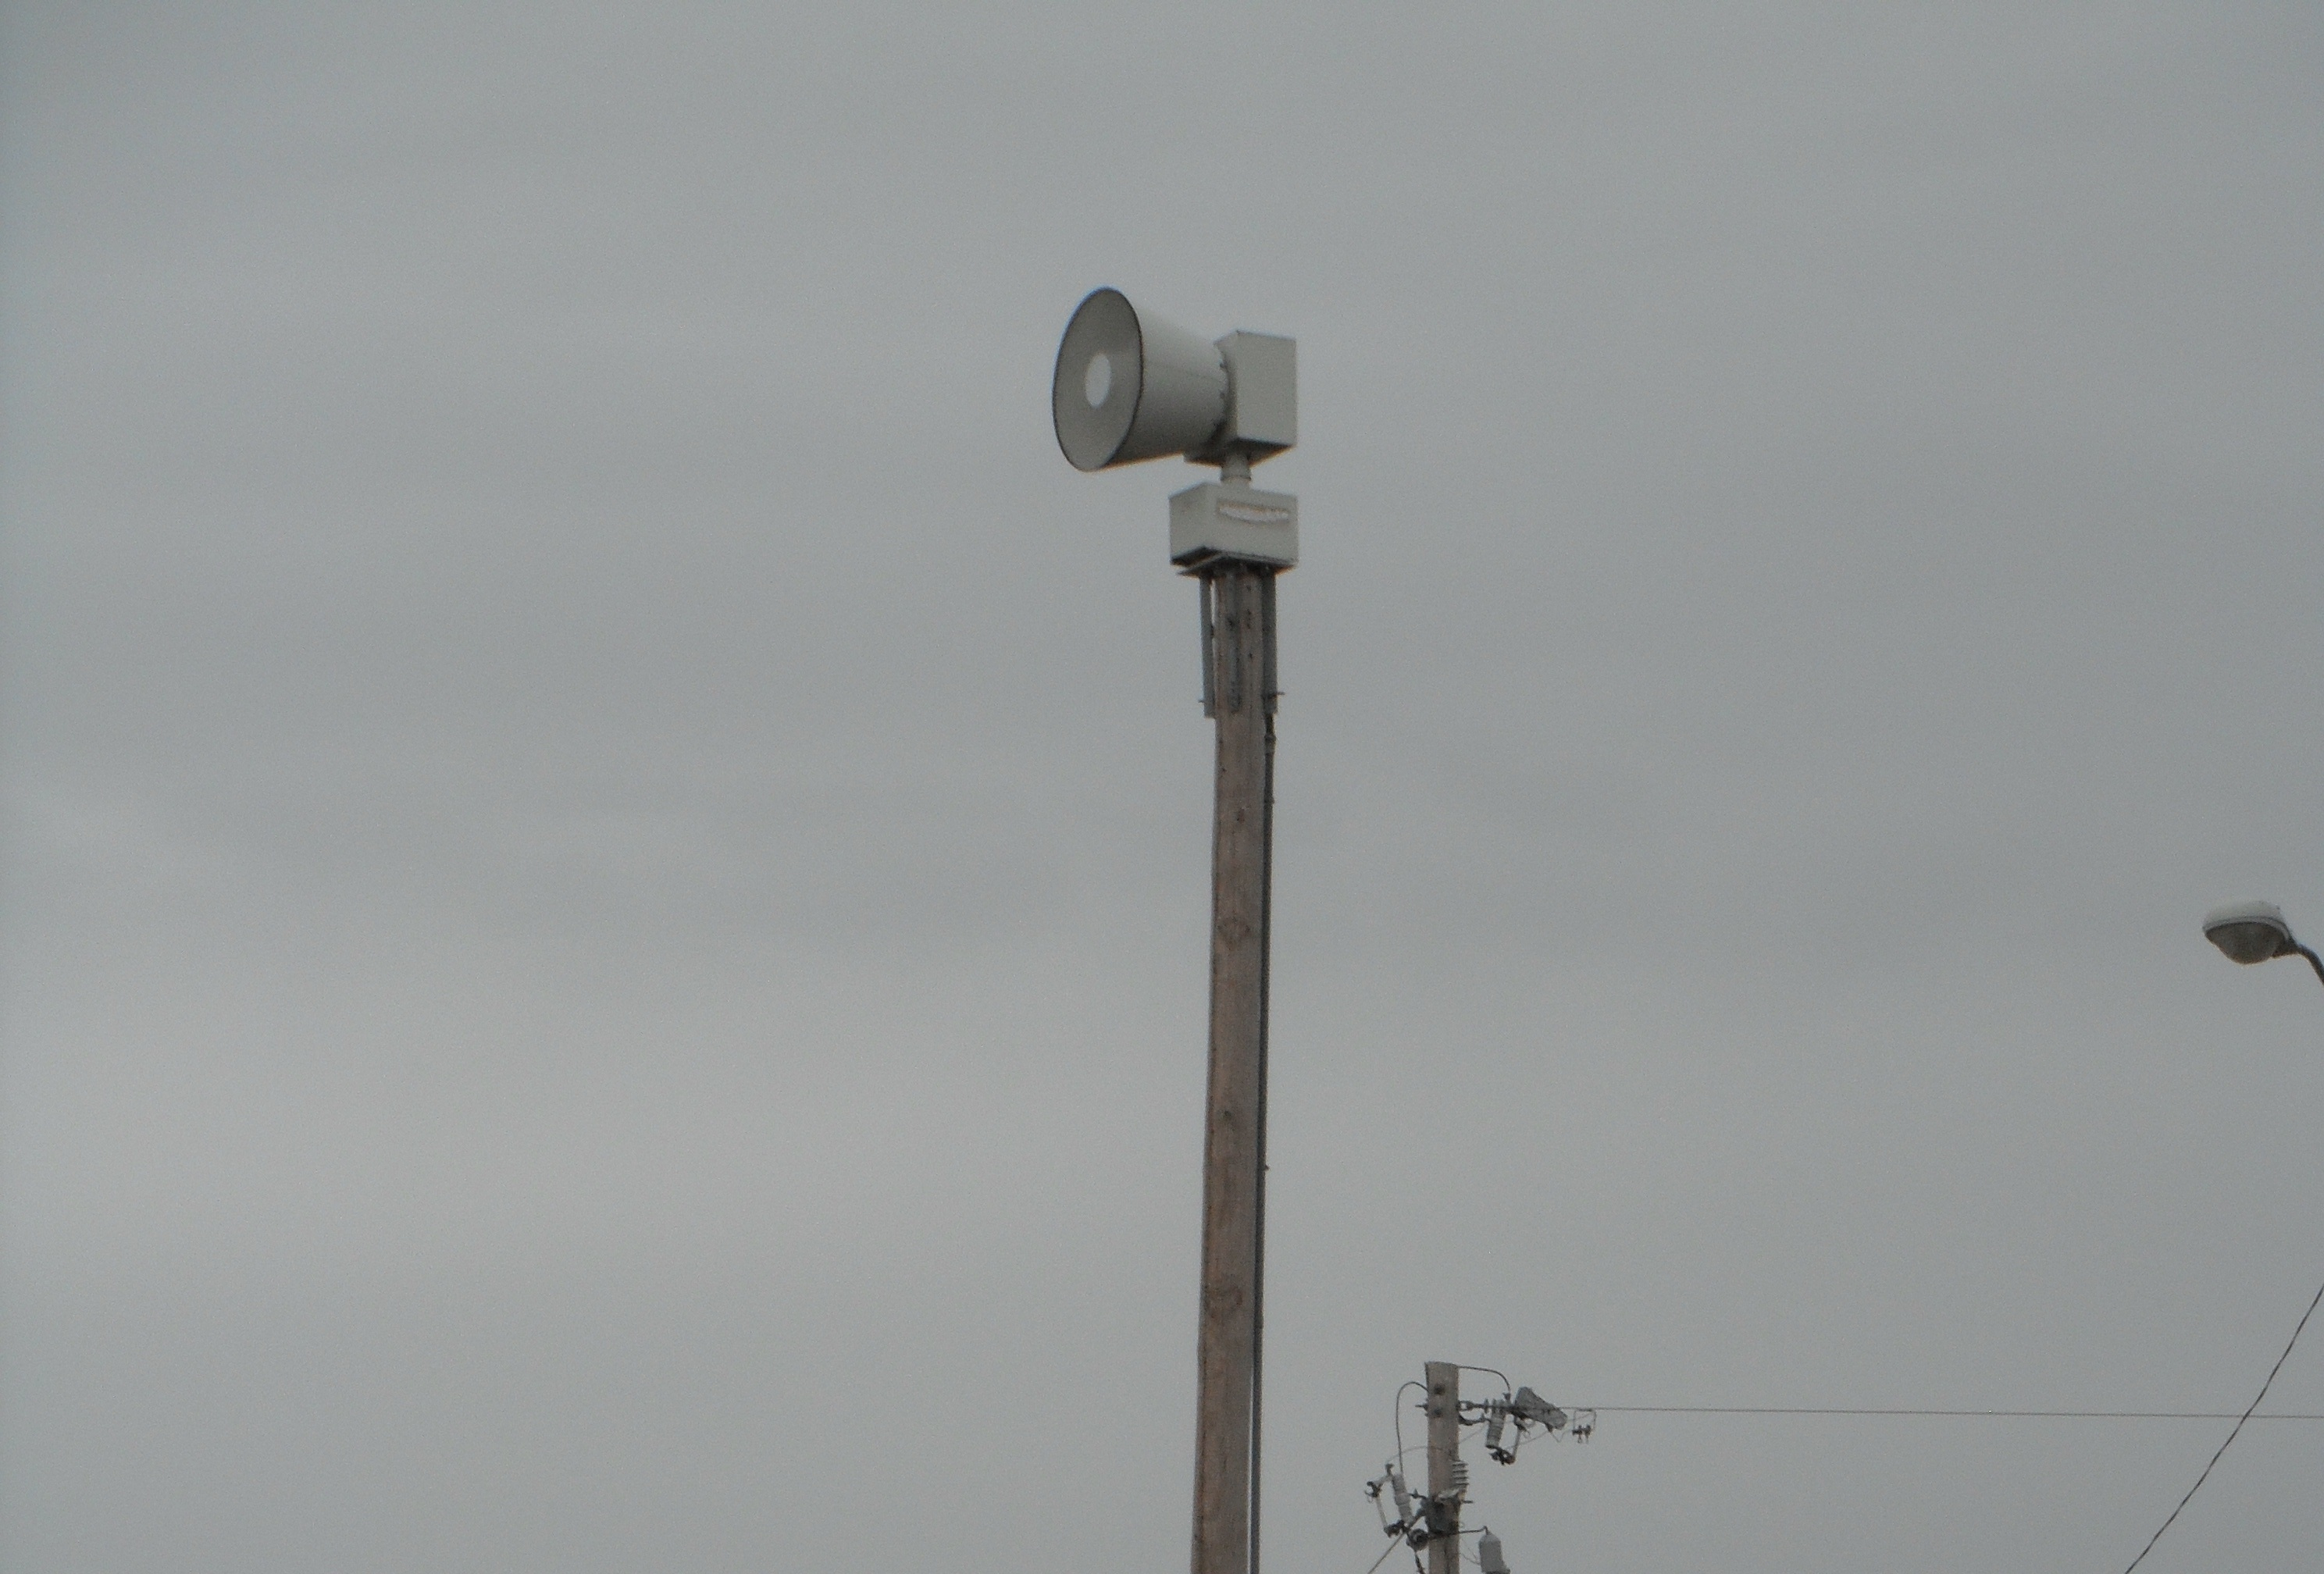 New Tornado Sirens Going Up